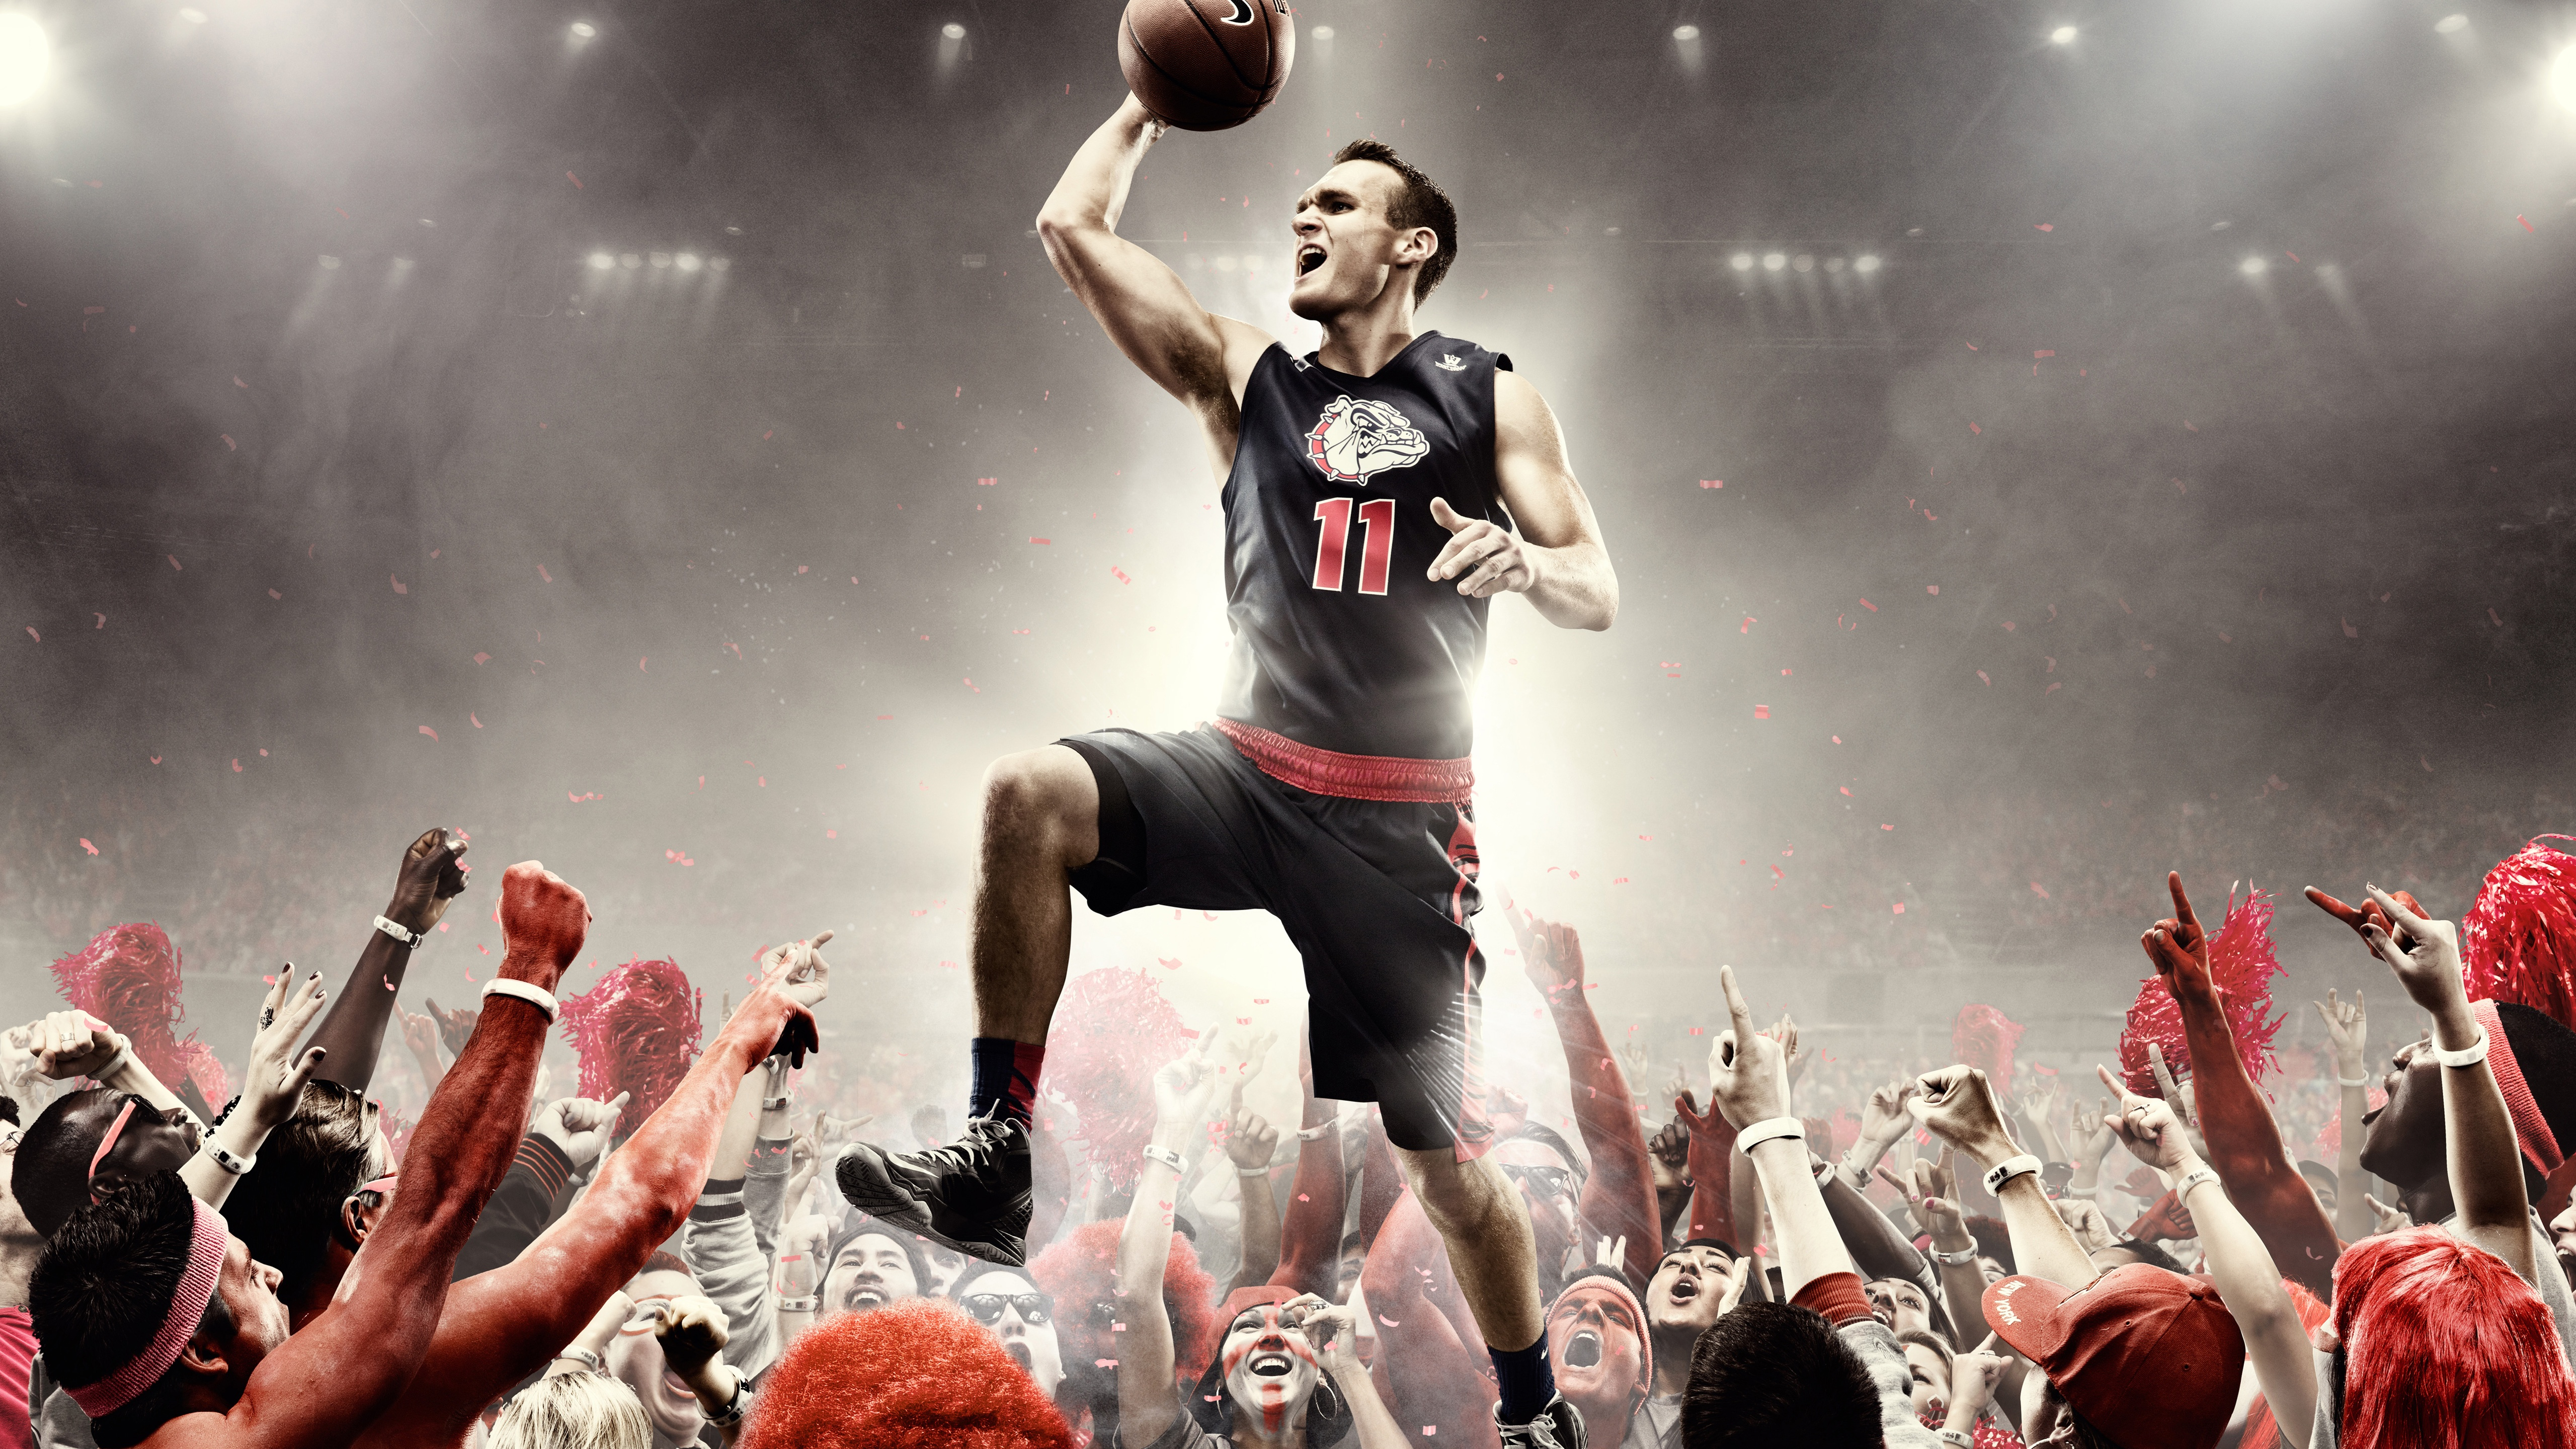 Nike Basketball Wallpapers In Jpg Format For Free Download